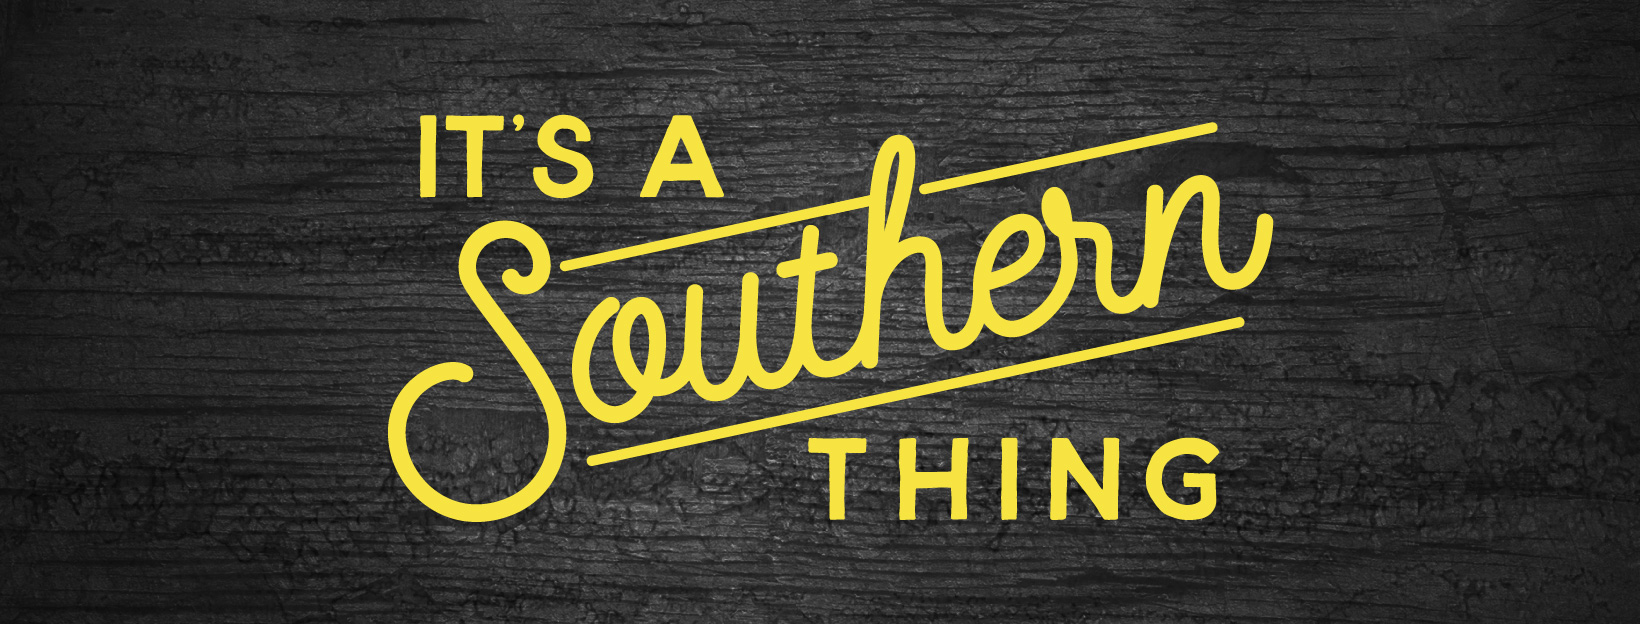 It's a Southern Thing logo